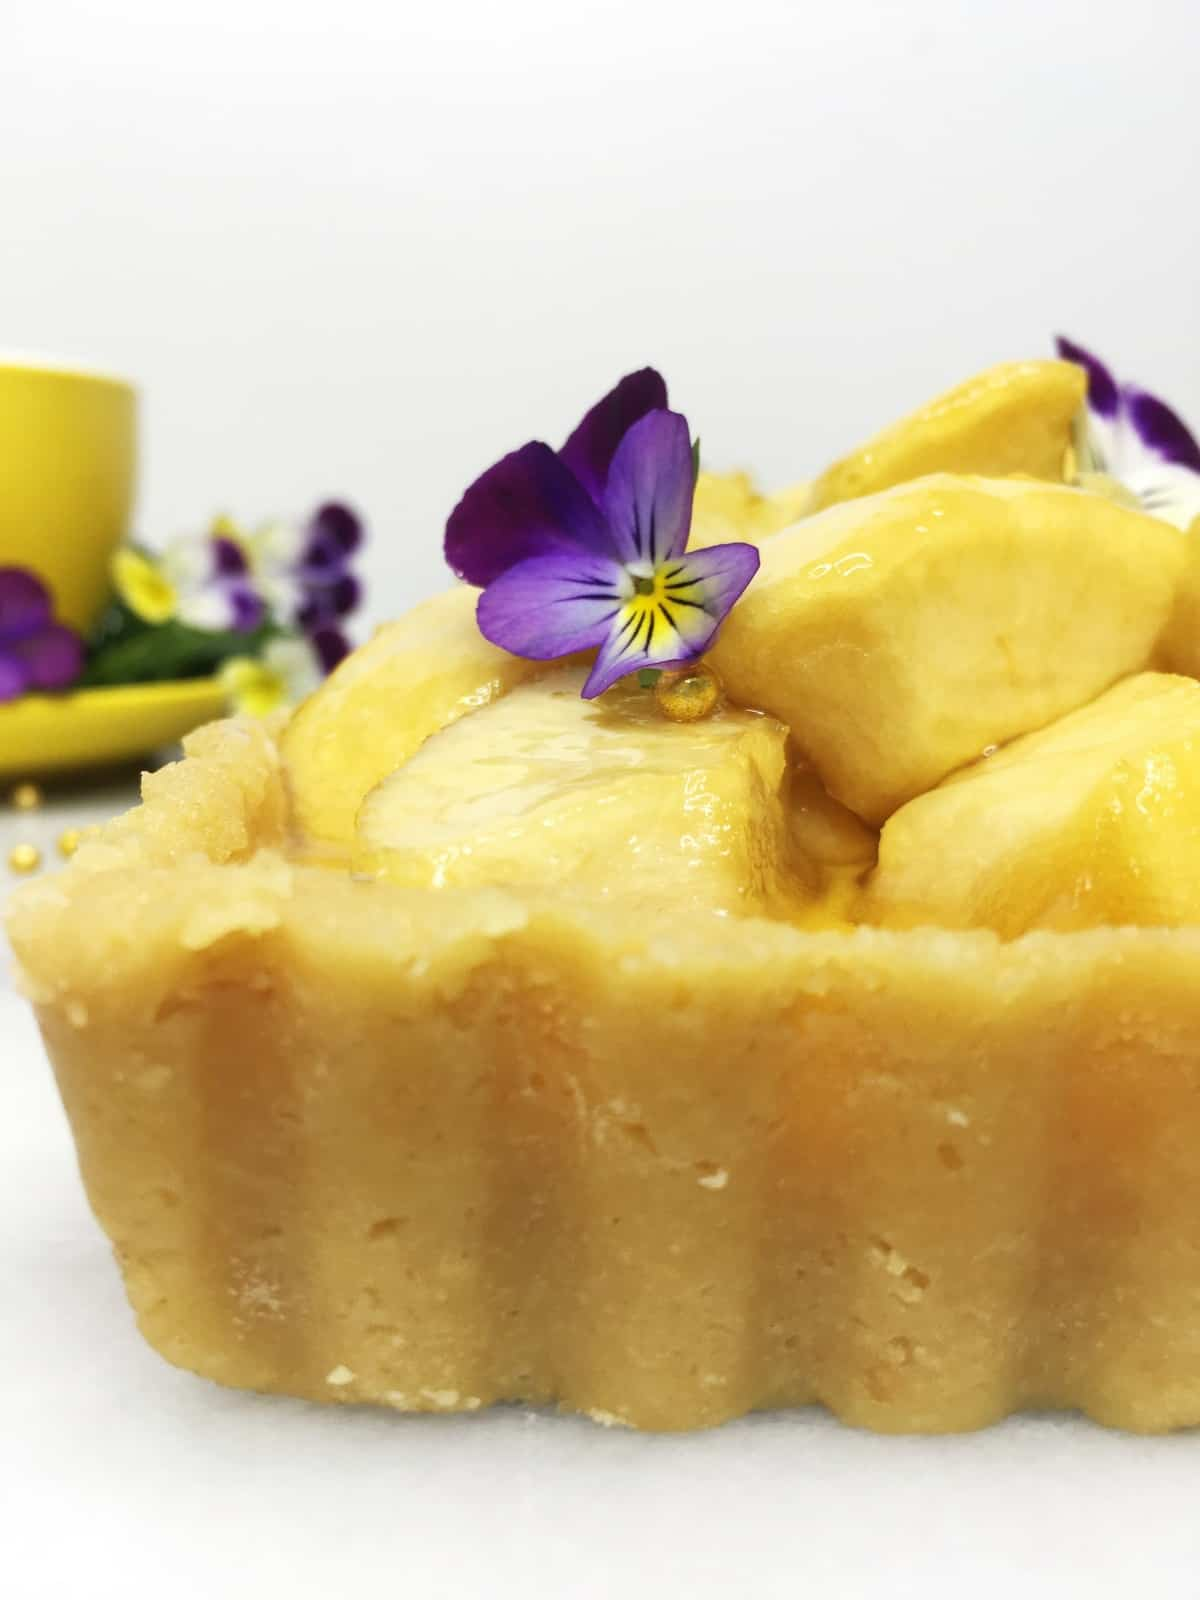 Tart loaded with caramelized apples and decorated with flours with a cup on the background